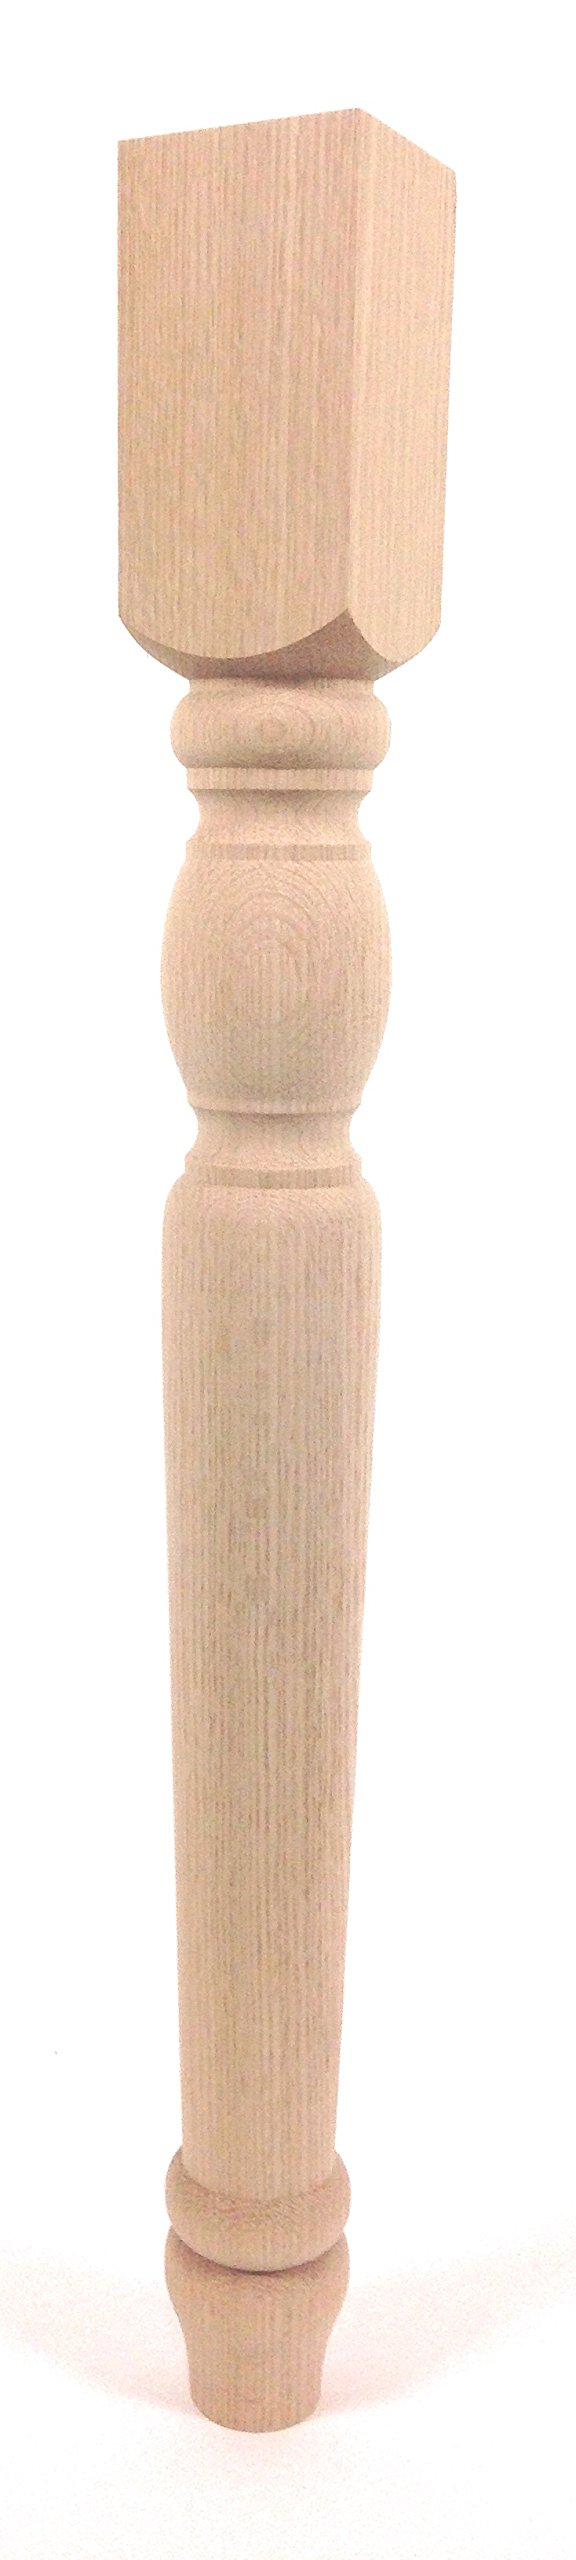 Narrow Cheshire Dining Table Leg - 29'' Tall x 3'' Wide (Red Oak) by Highland Manor Wood Products